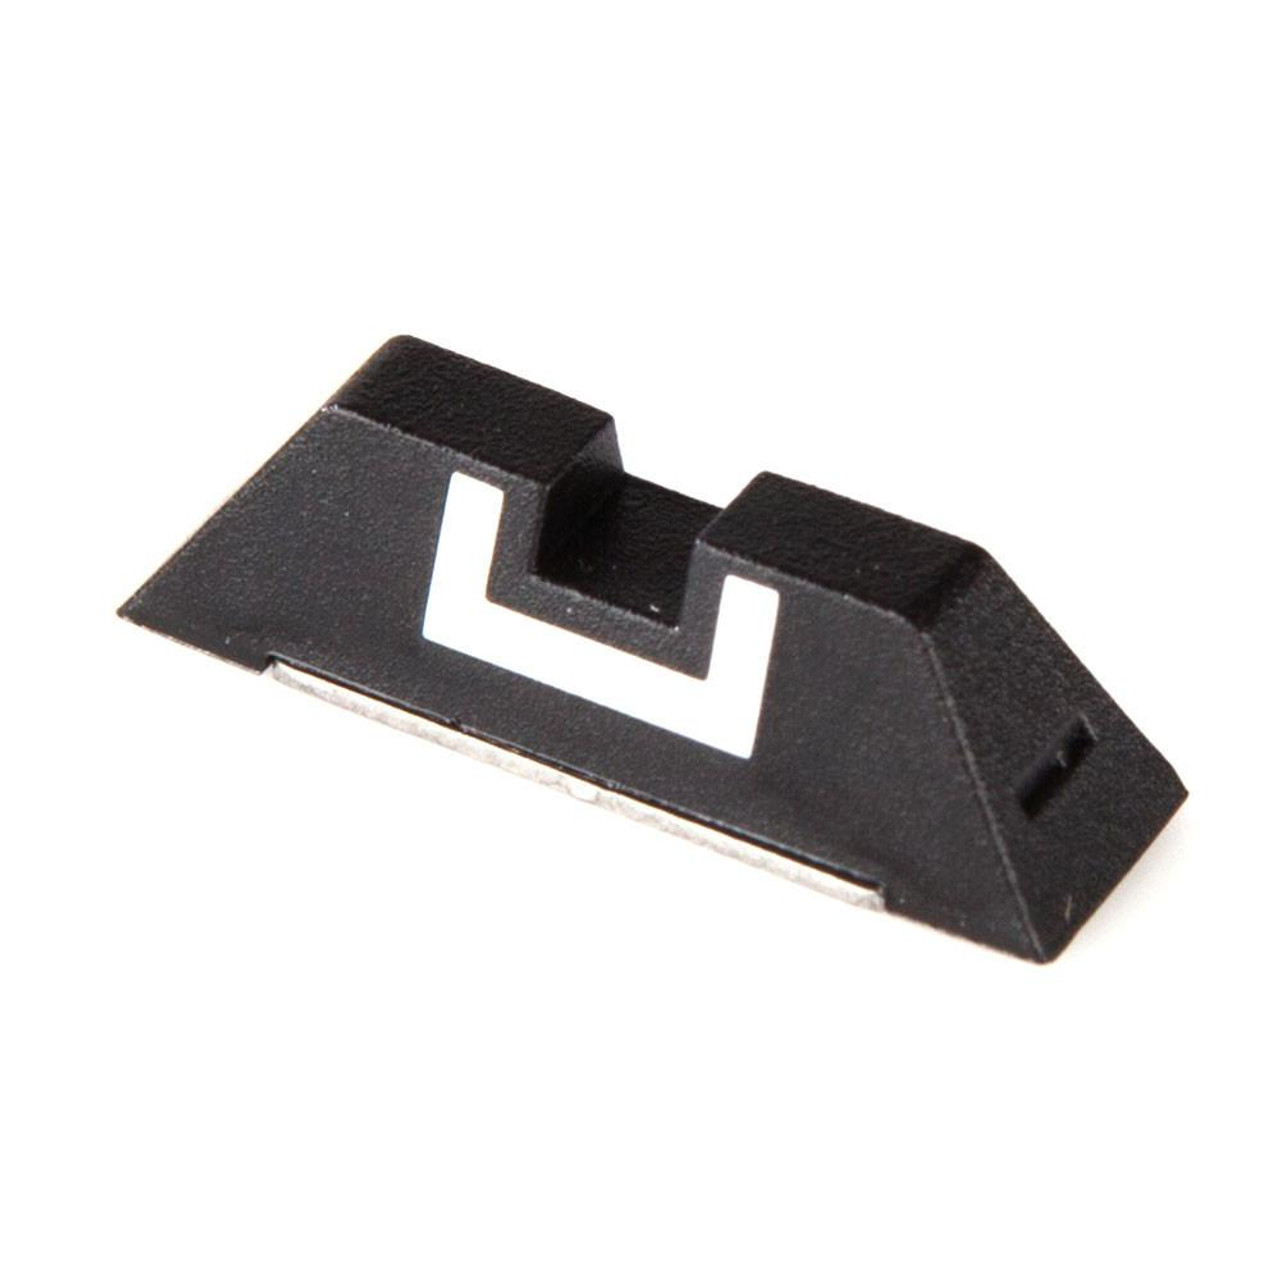 GLOCK PLASTIC FIXED REAR SIGHT 6.5MM